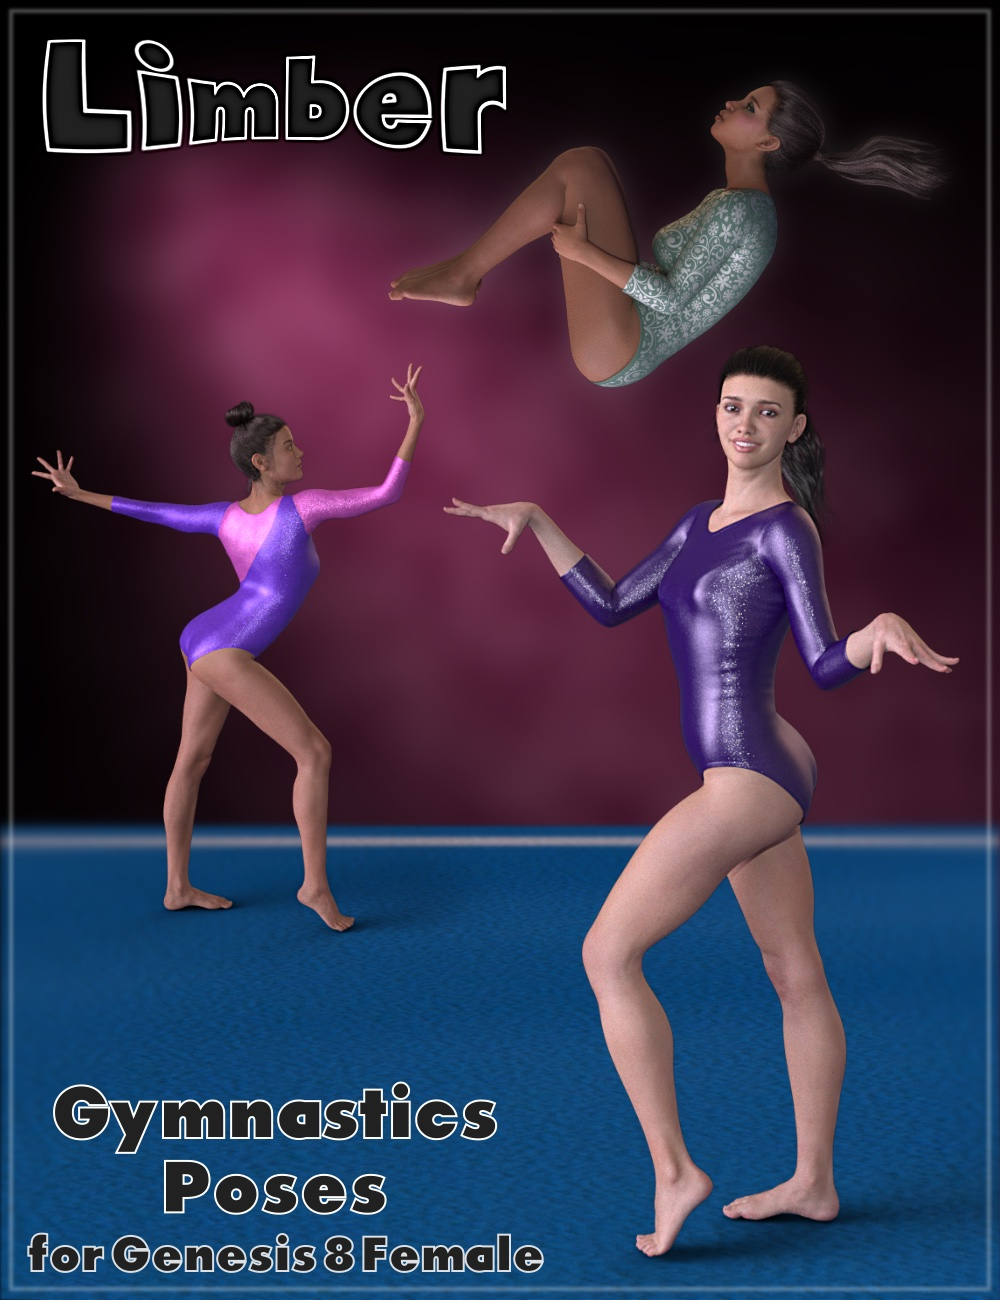 Limber - Gymnastic Poses for Genesis 8 Female by: NewGuy, 3D Models by Daz 3D